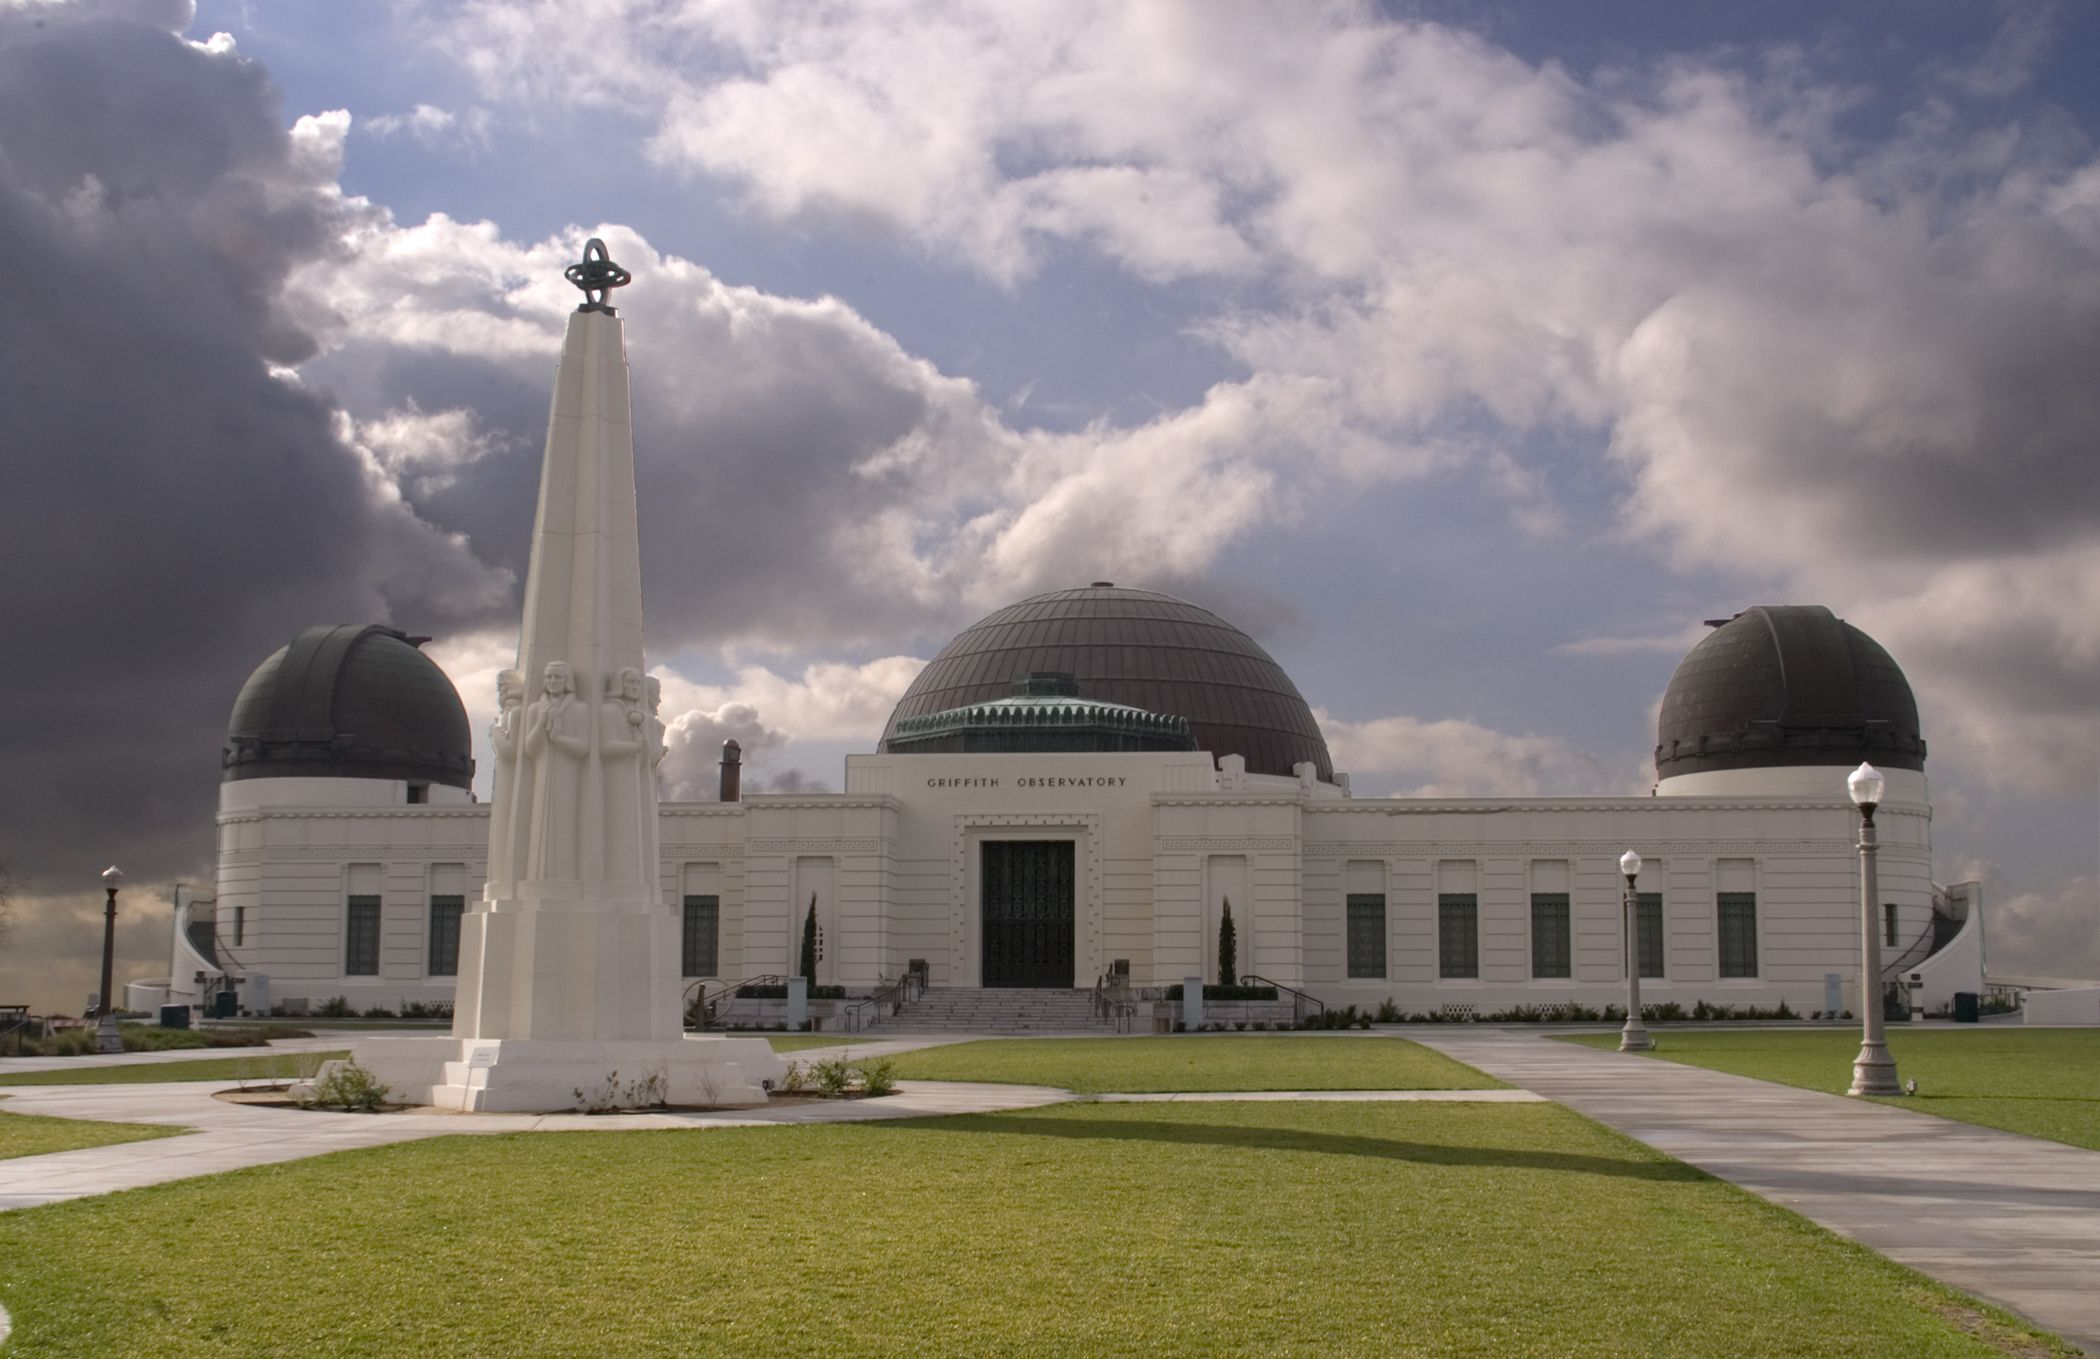 City of Los Angeles Griffith Observatory located at 2800